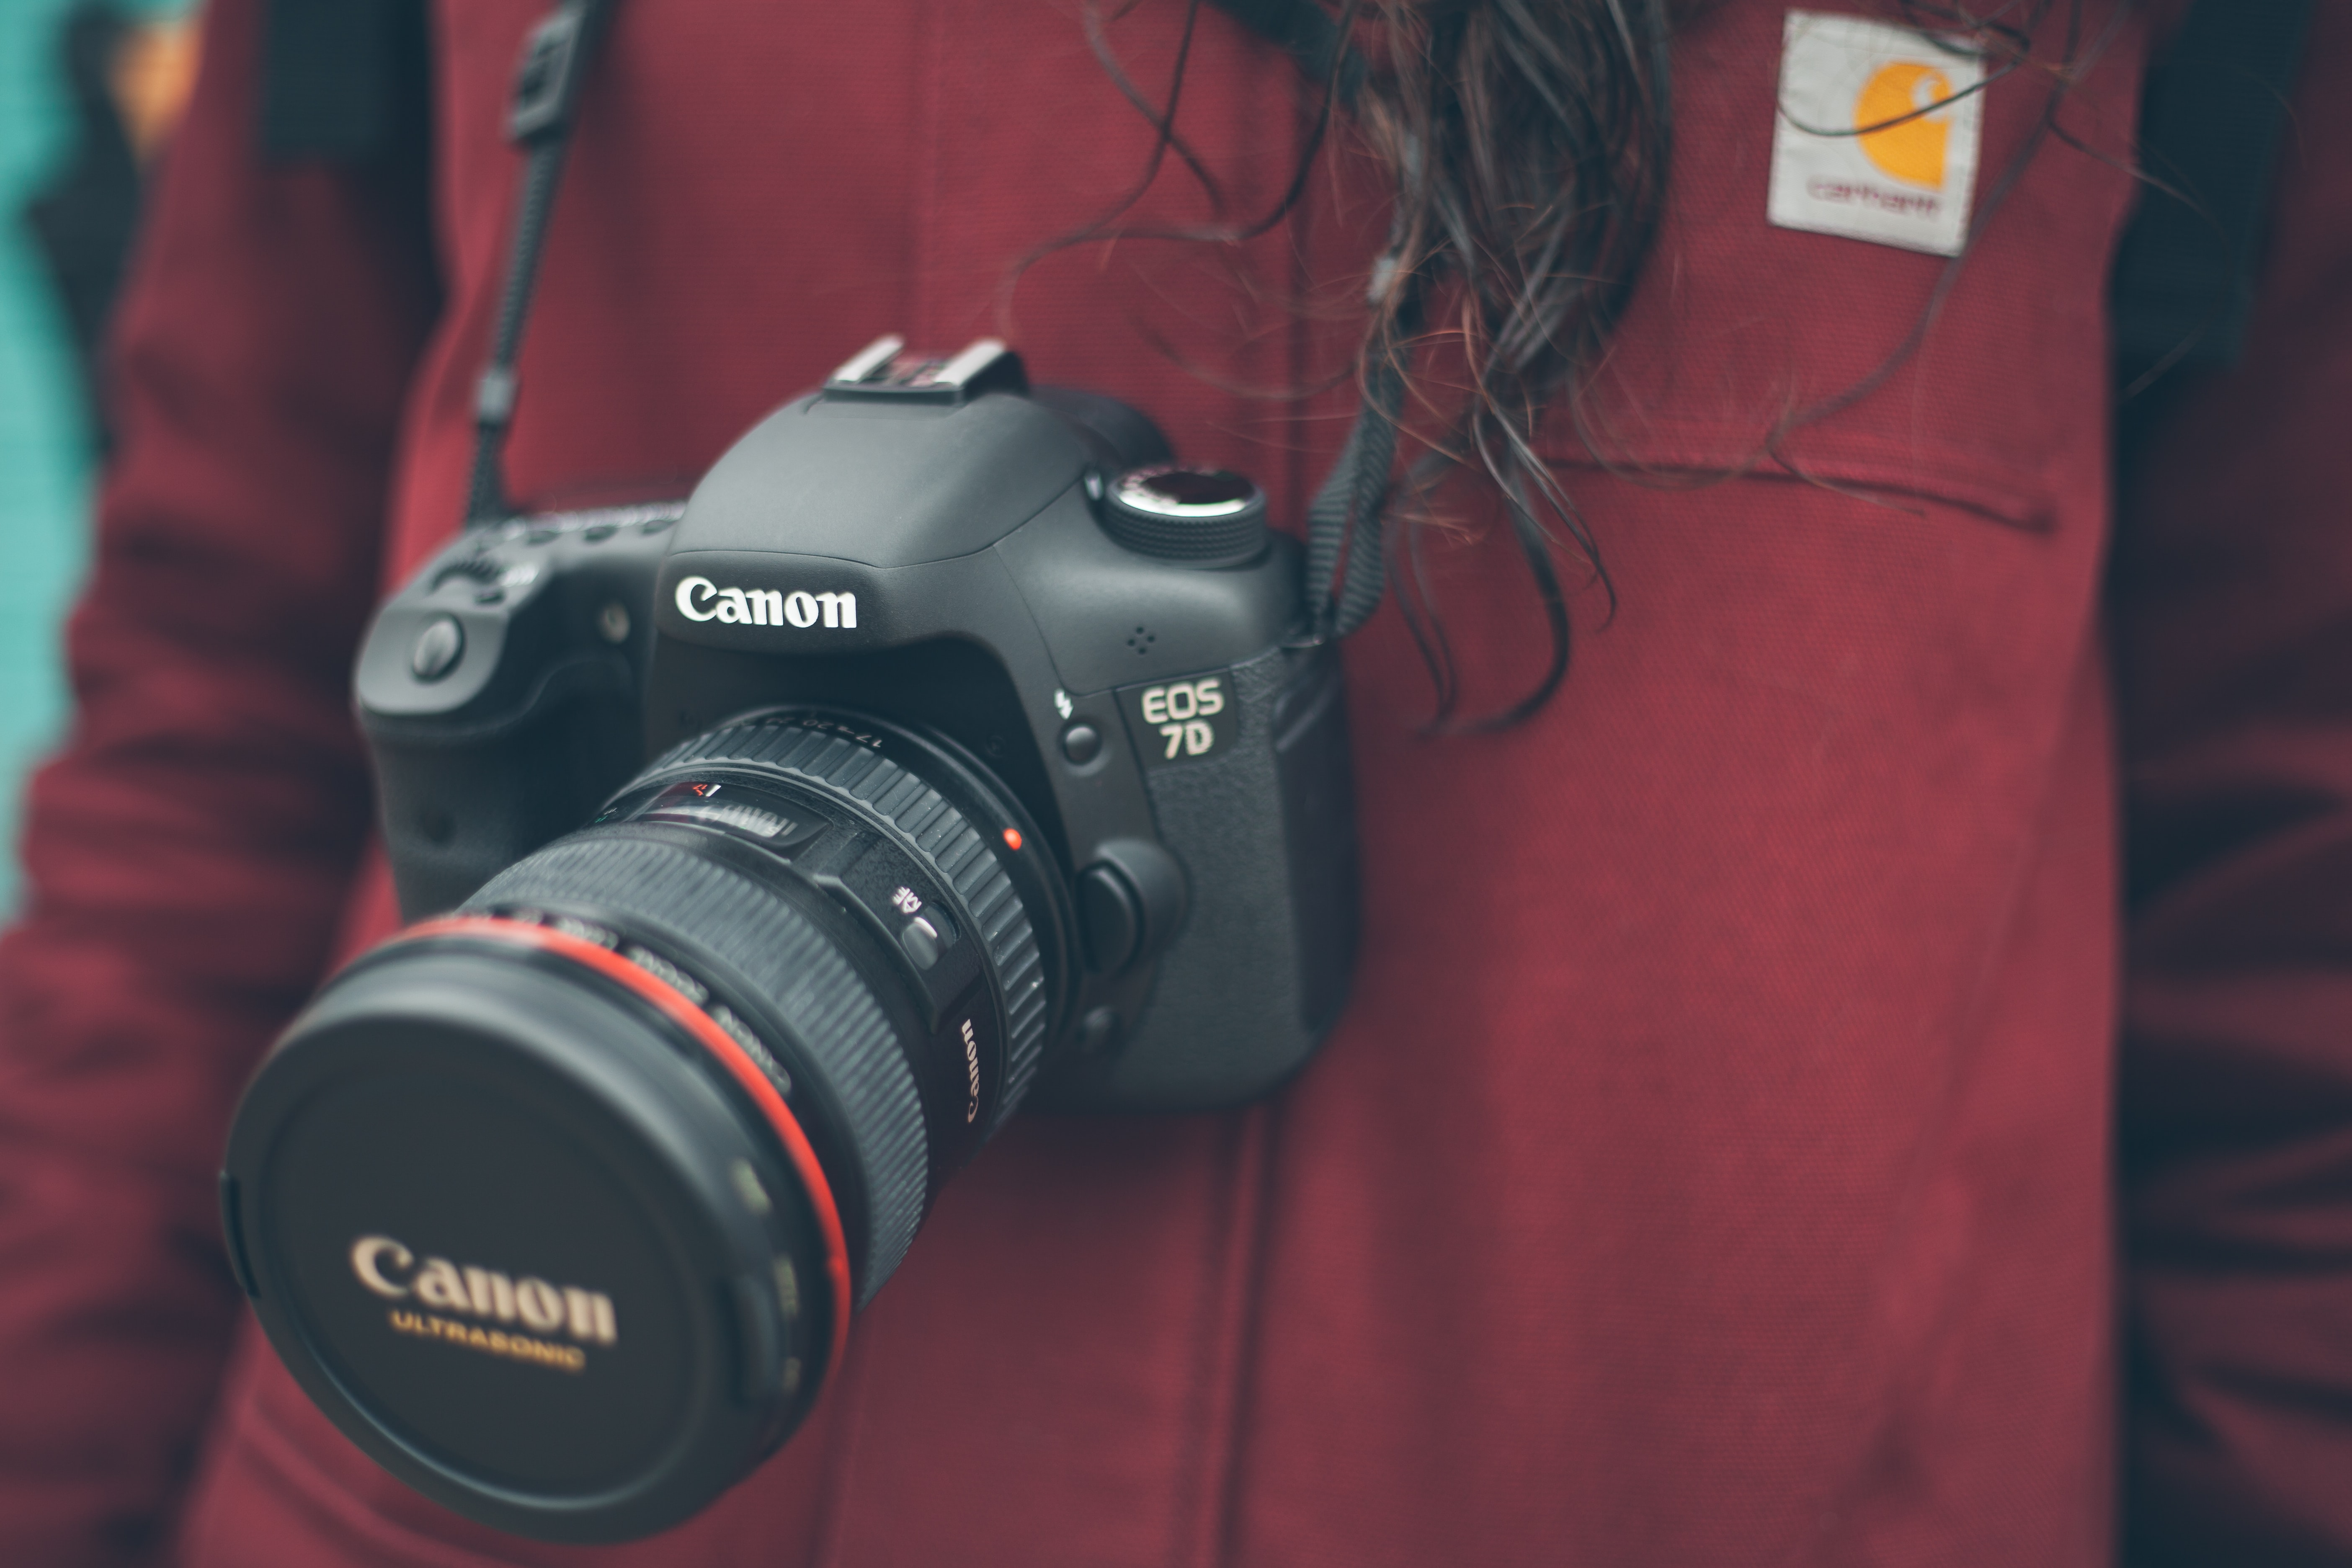 A woman photographer on a red outfit handing a black canon digital camera around her neck